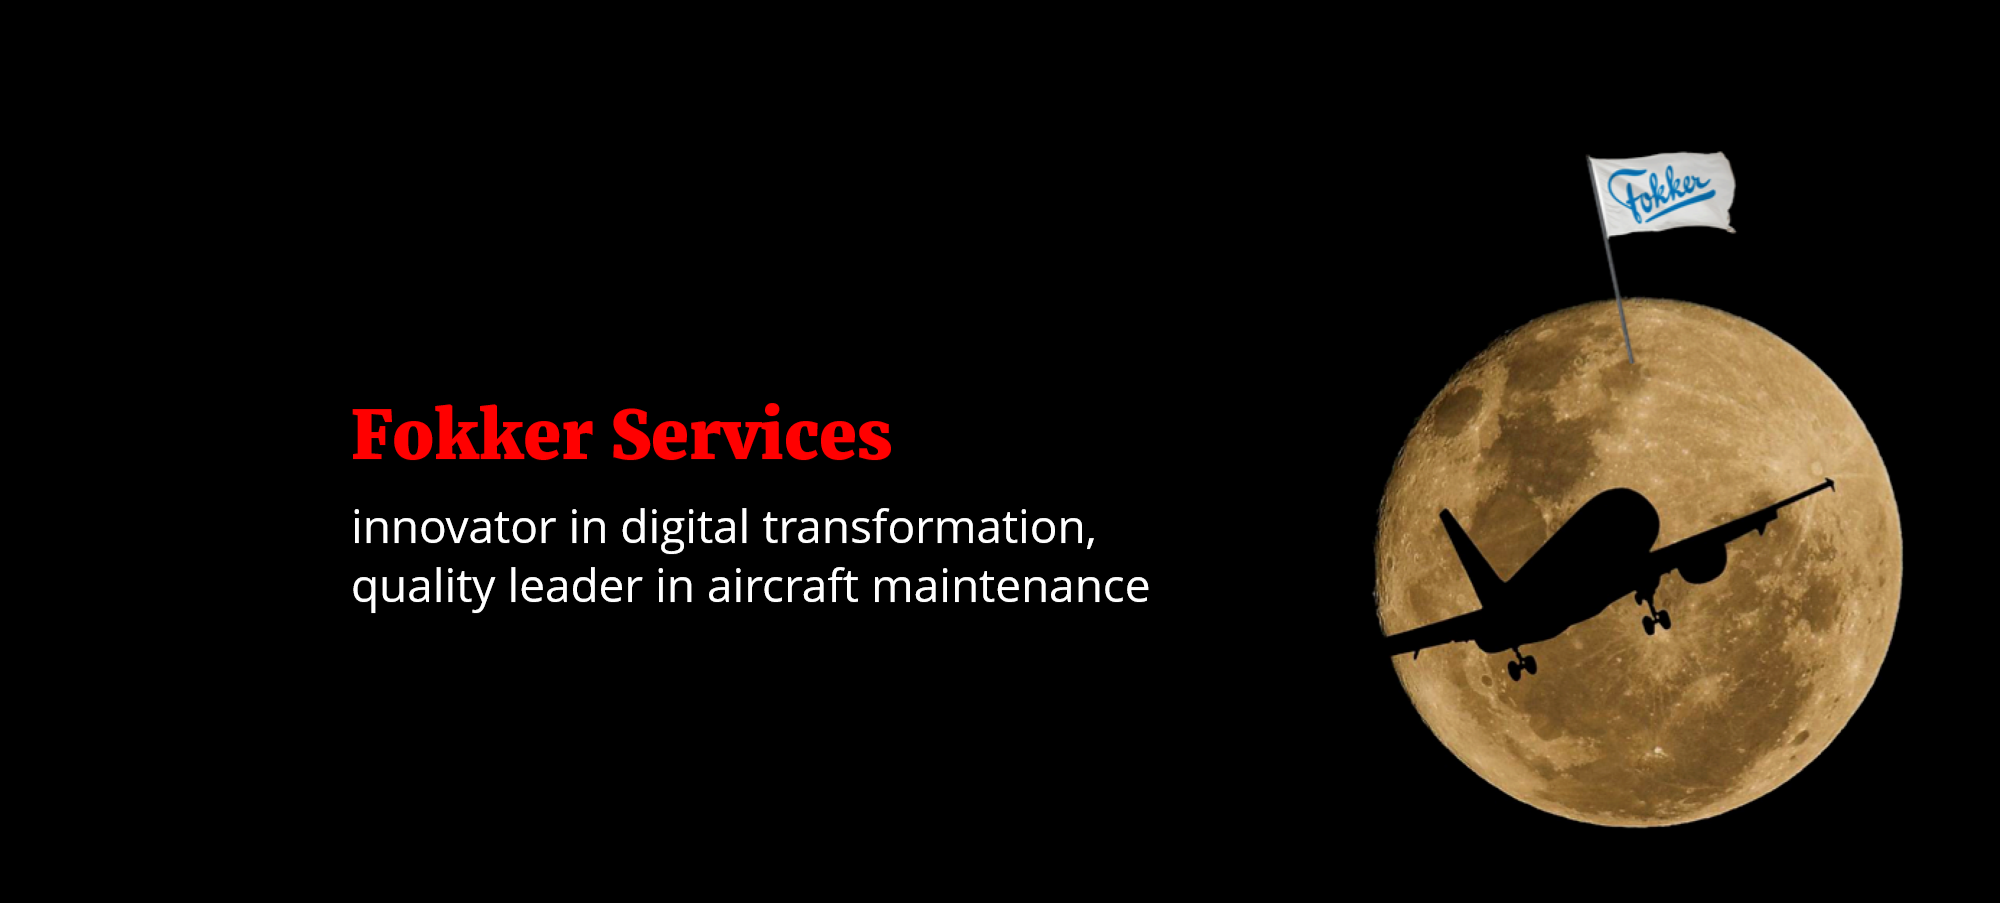 Digital transformation and e-commerce in aircraft maintenance